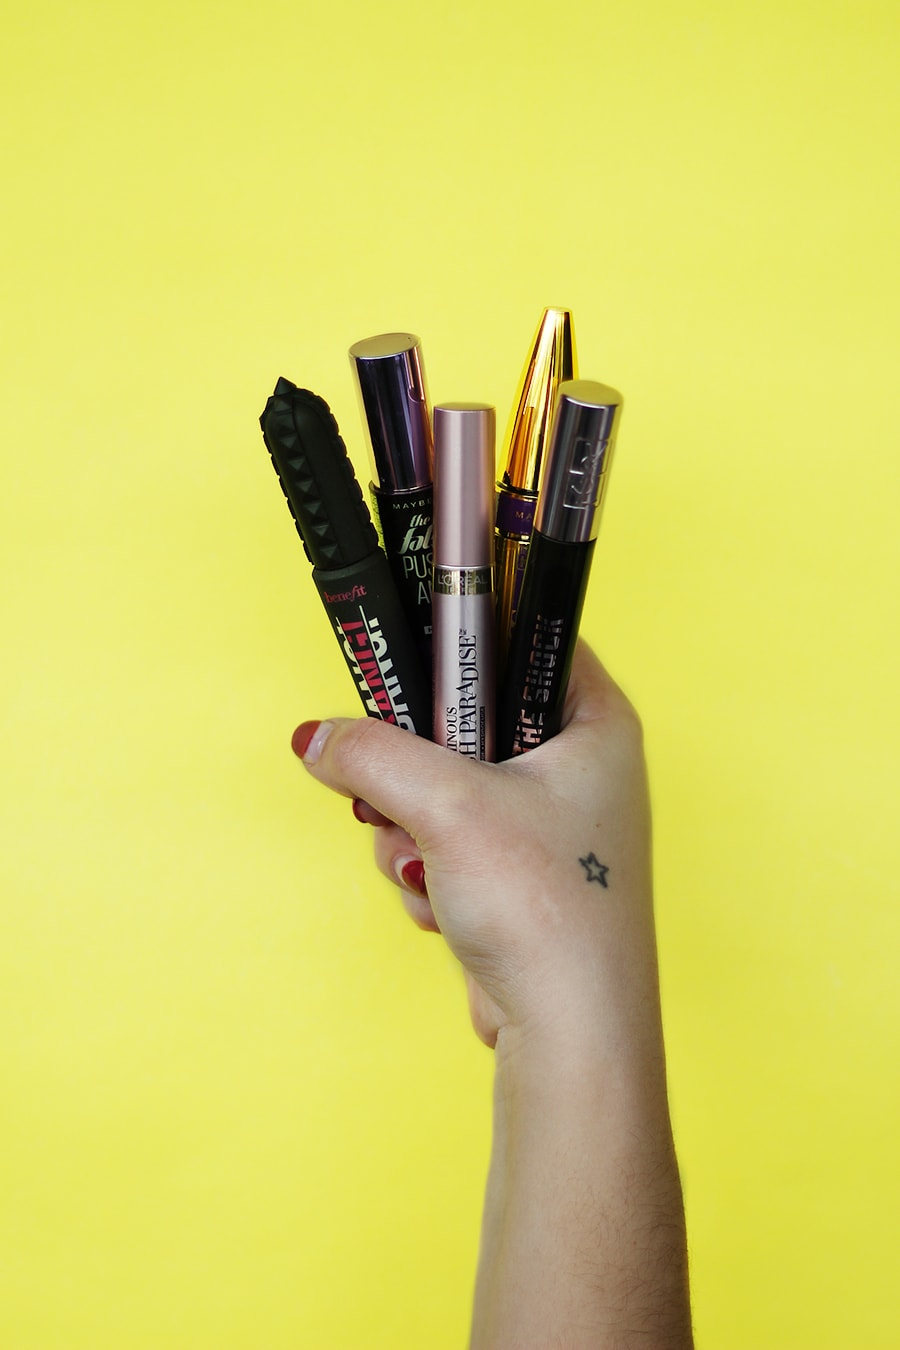 Rimel mascara review reseña favoritas maquillaje pestañas